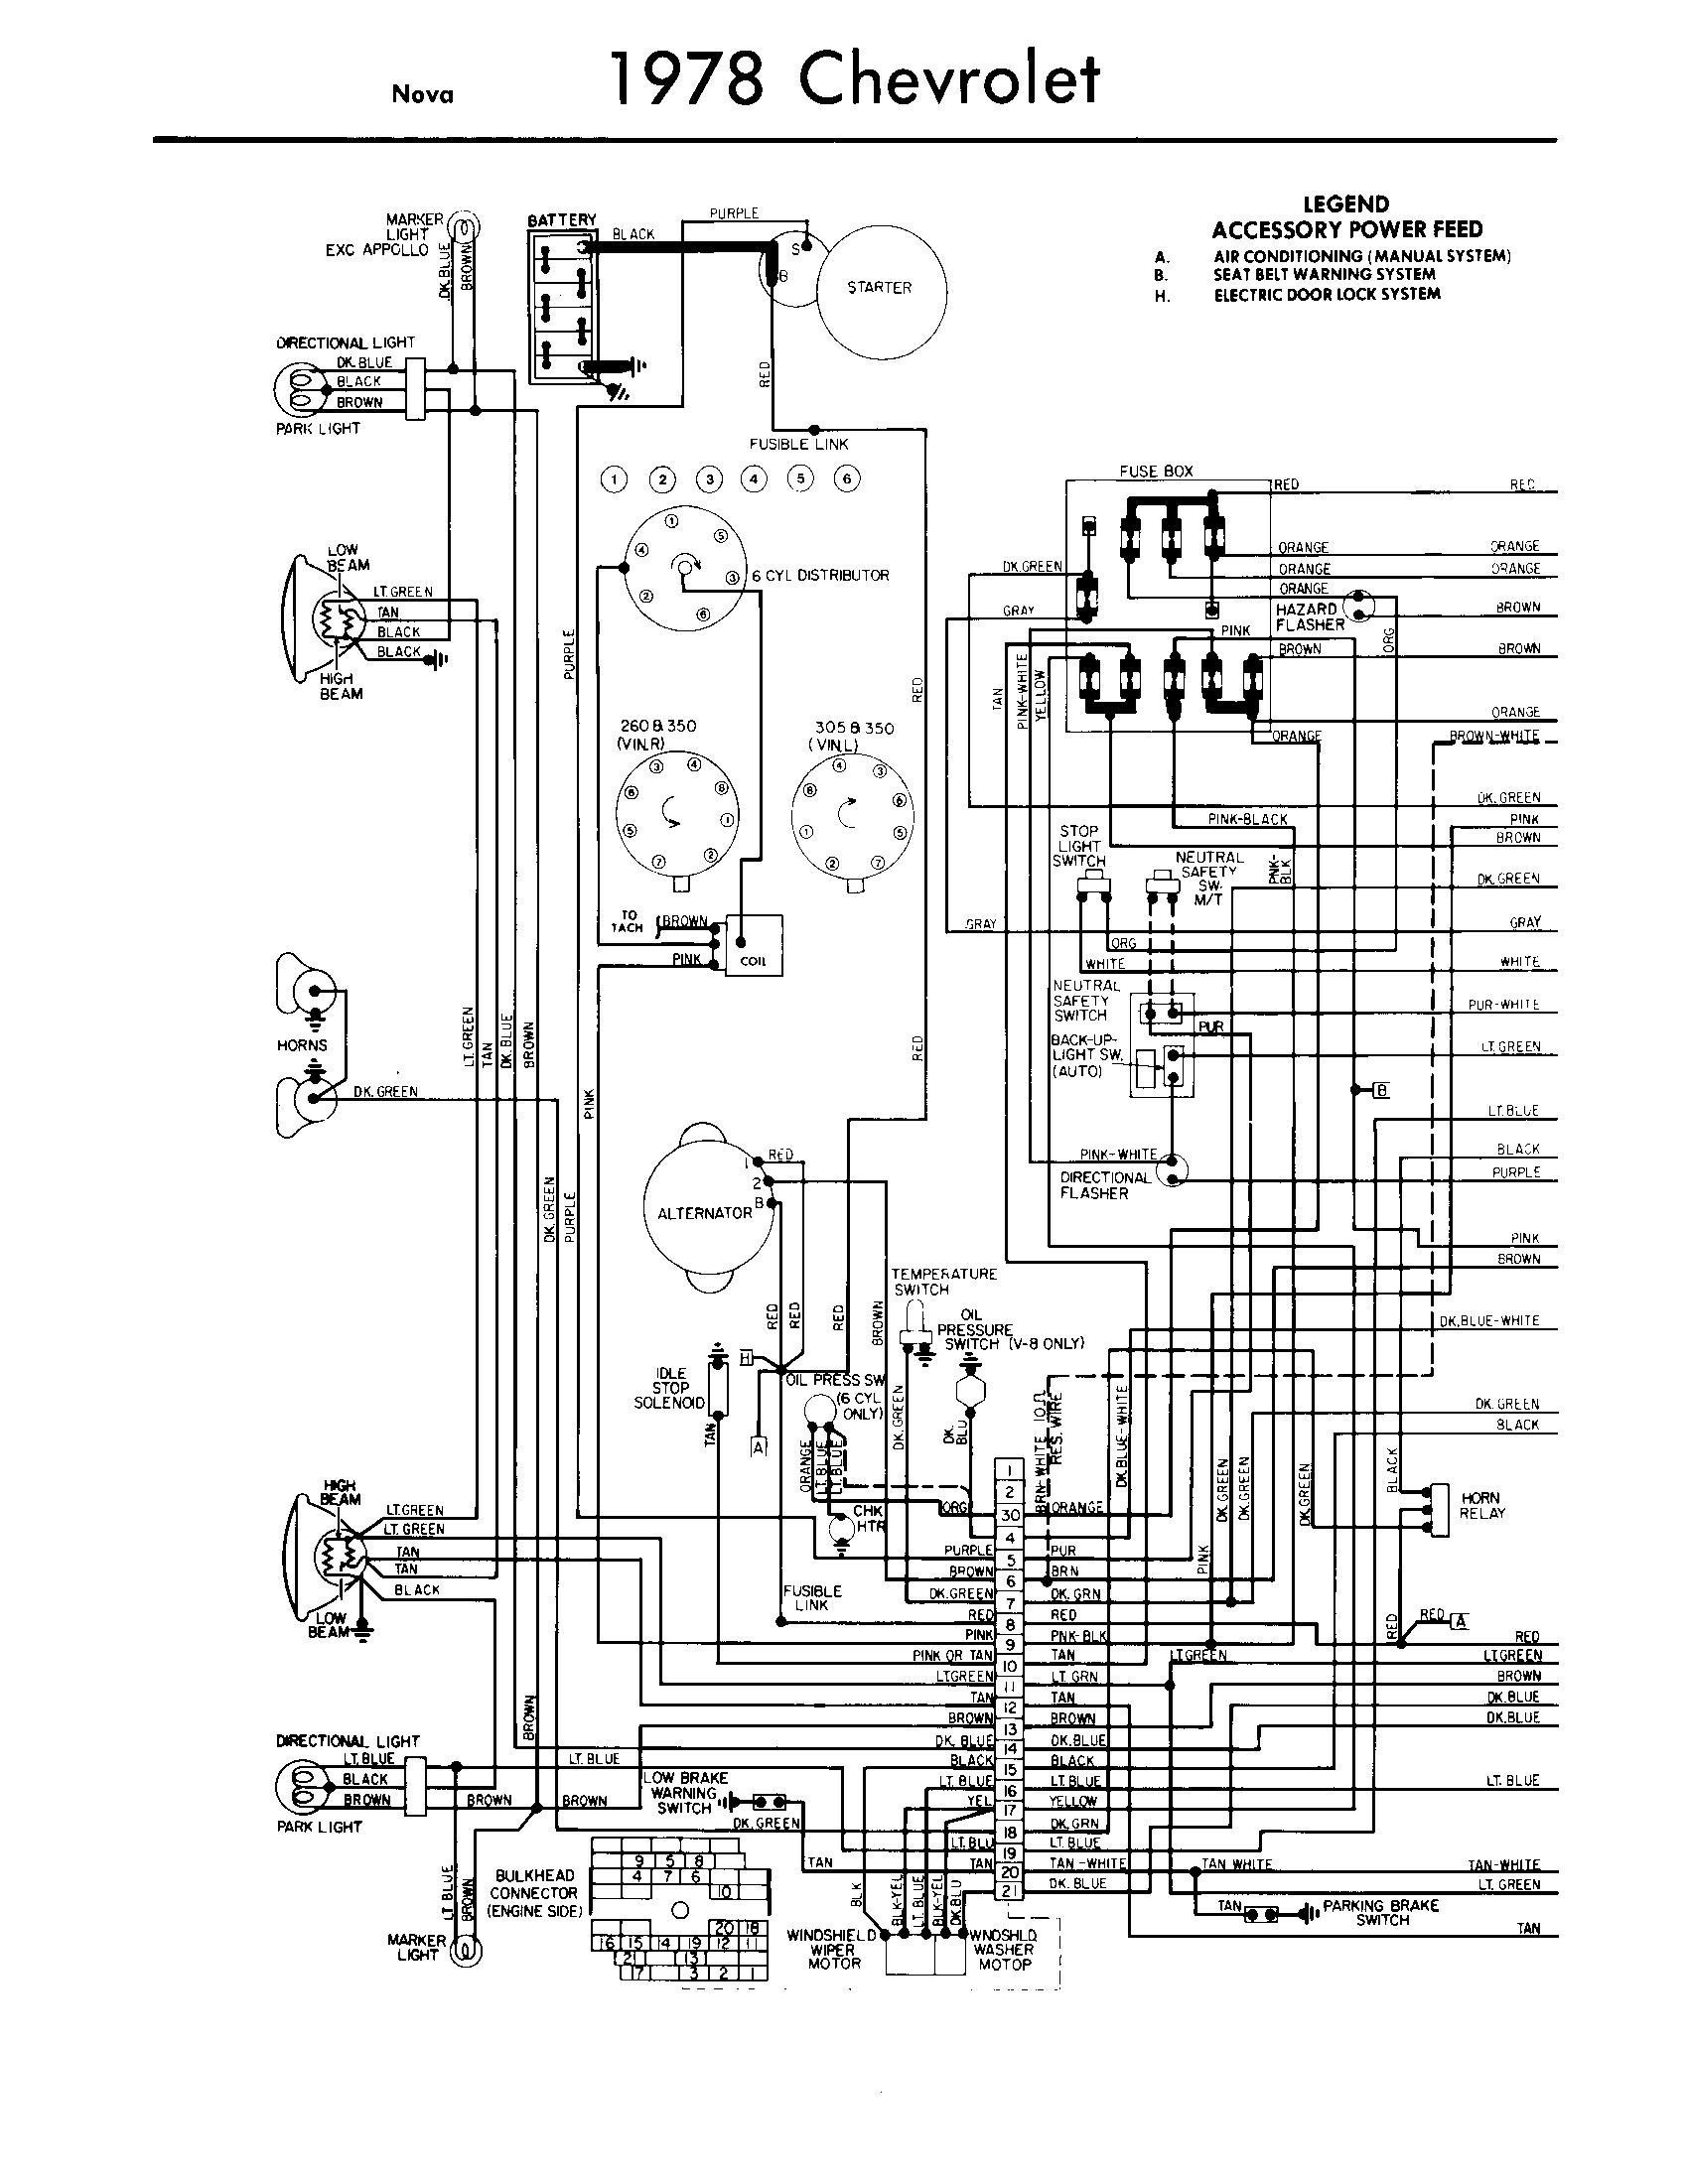 1985 Chevy Truck Wiring Diagram Windshield Wipers